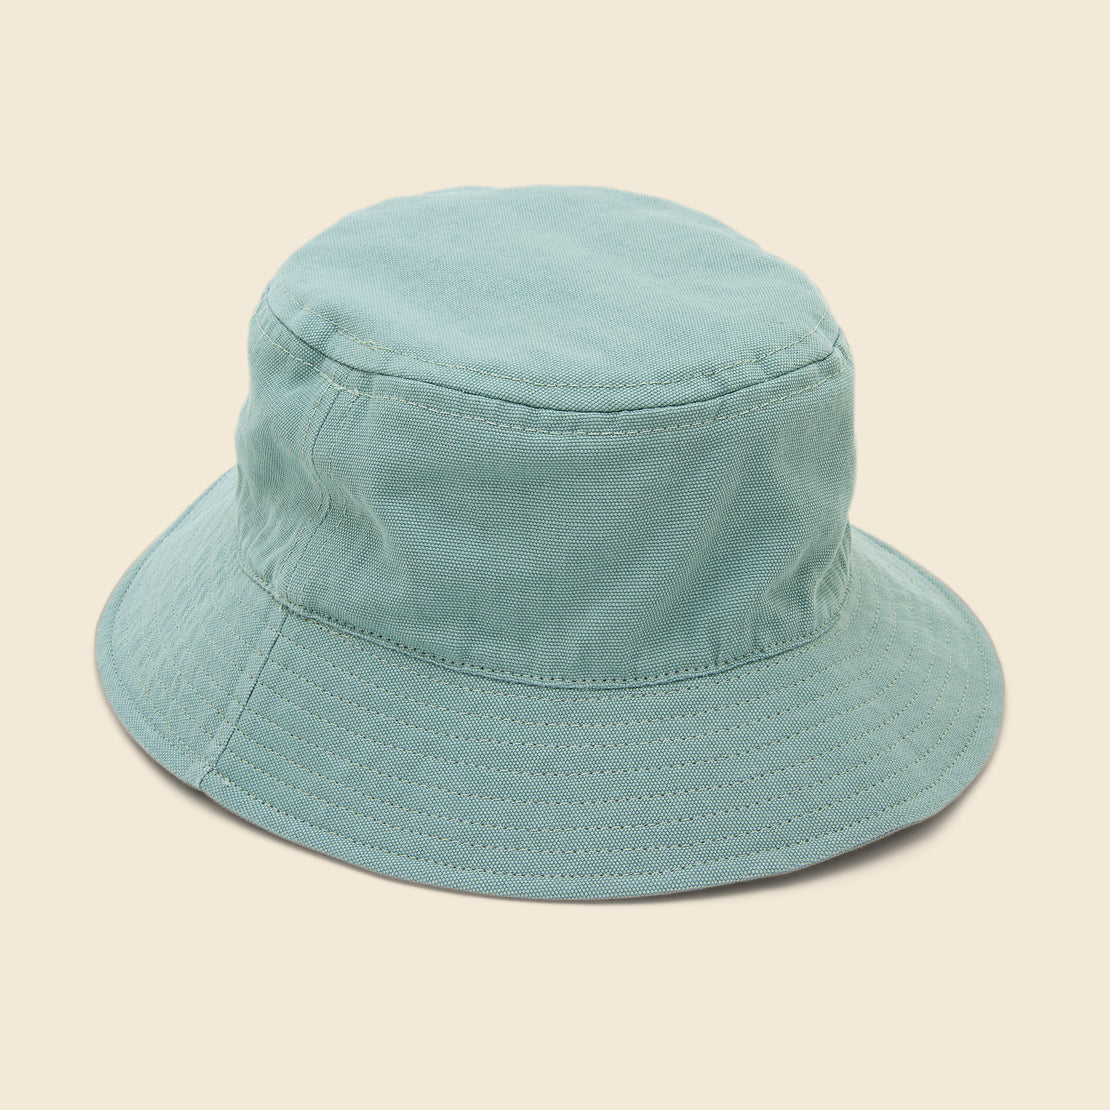 Save Khaki Canvas Bucket Cap - Dew